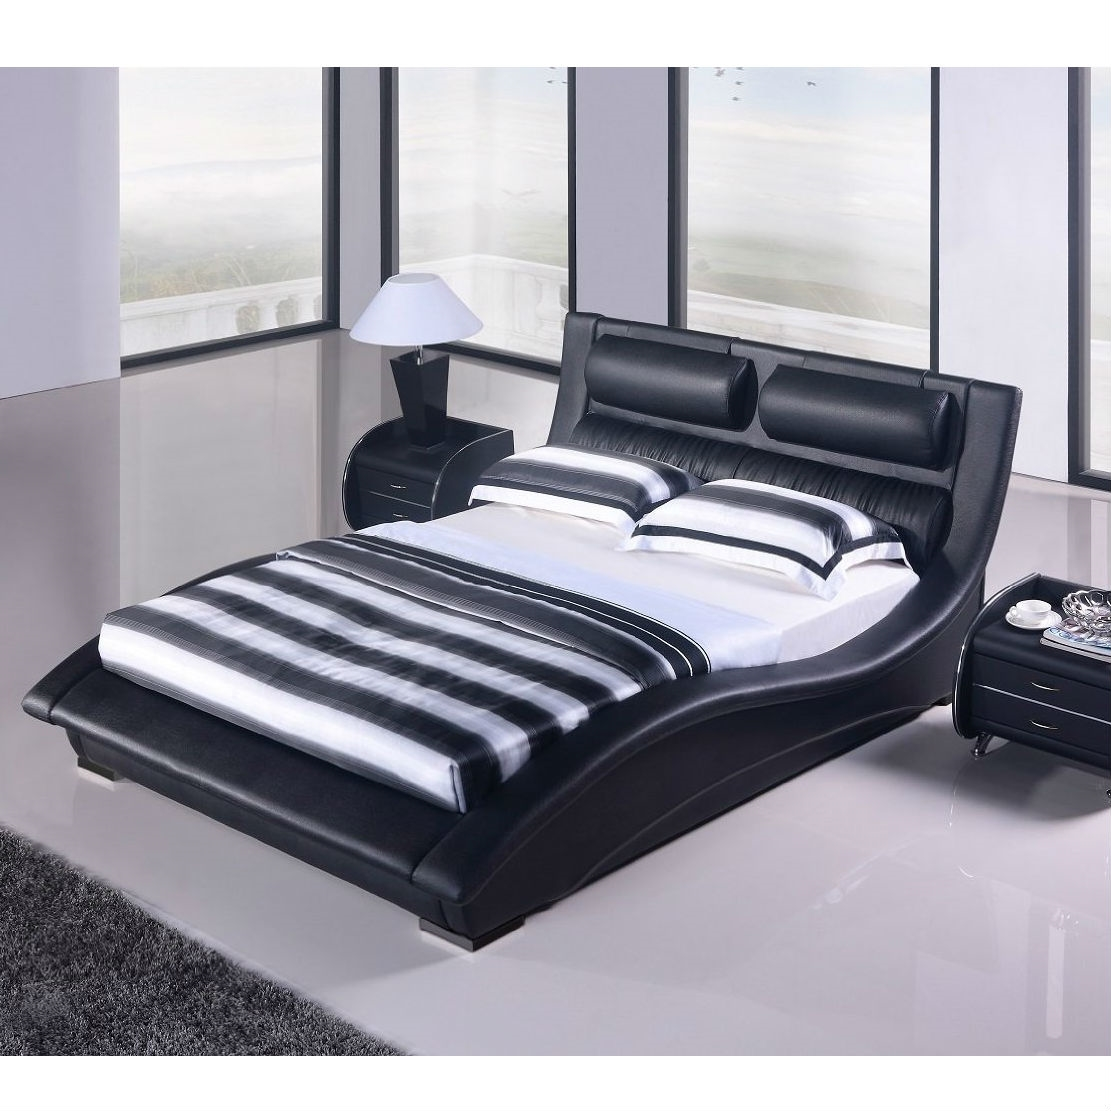 King Size Modern Black Faux Leather Upholstered Platform Bed With Headboard Fastfurnishings Com